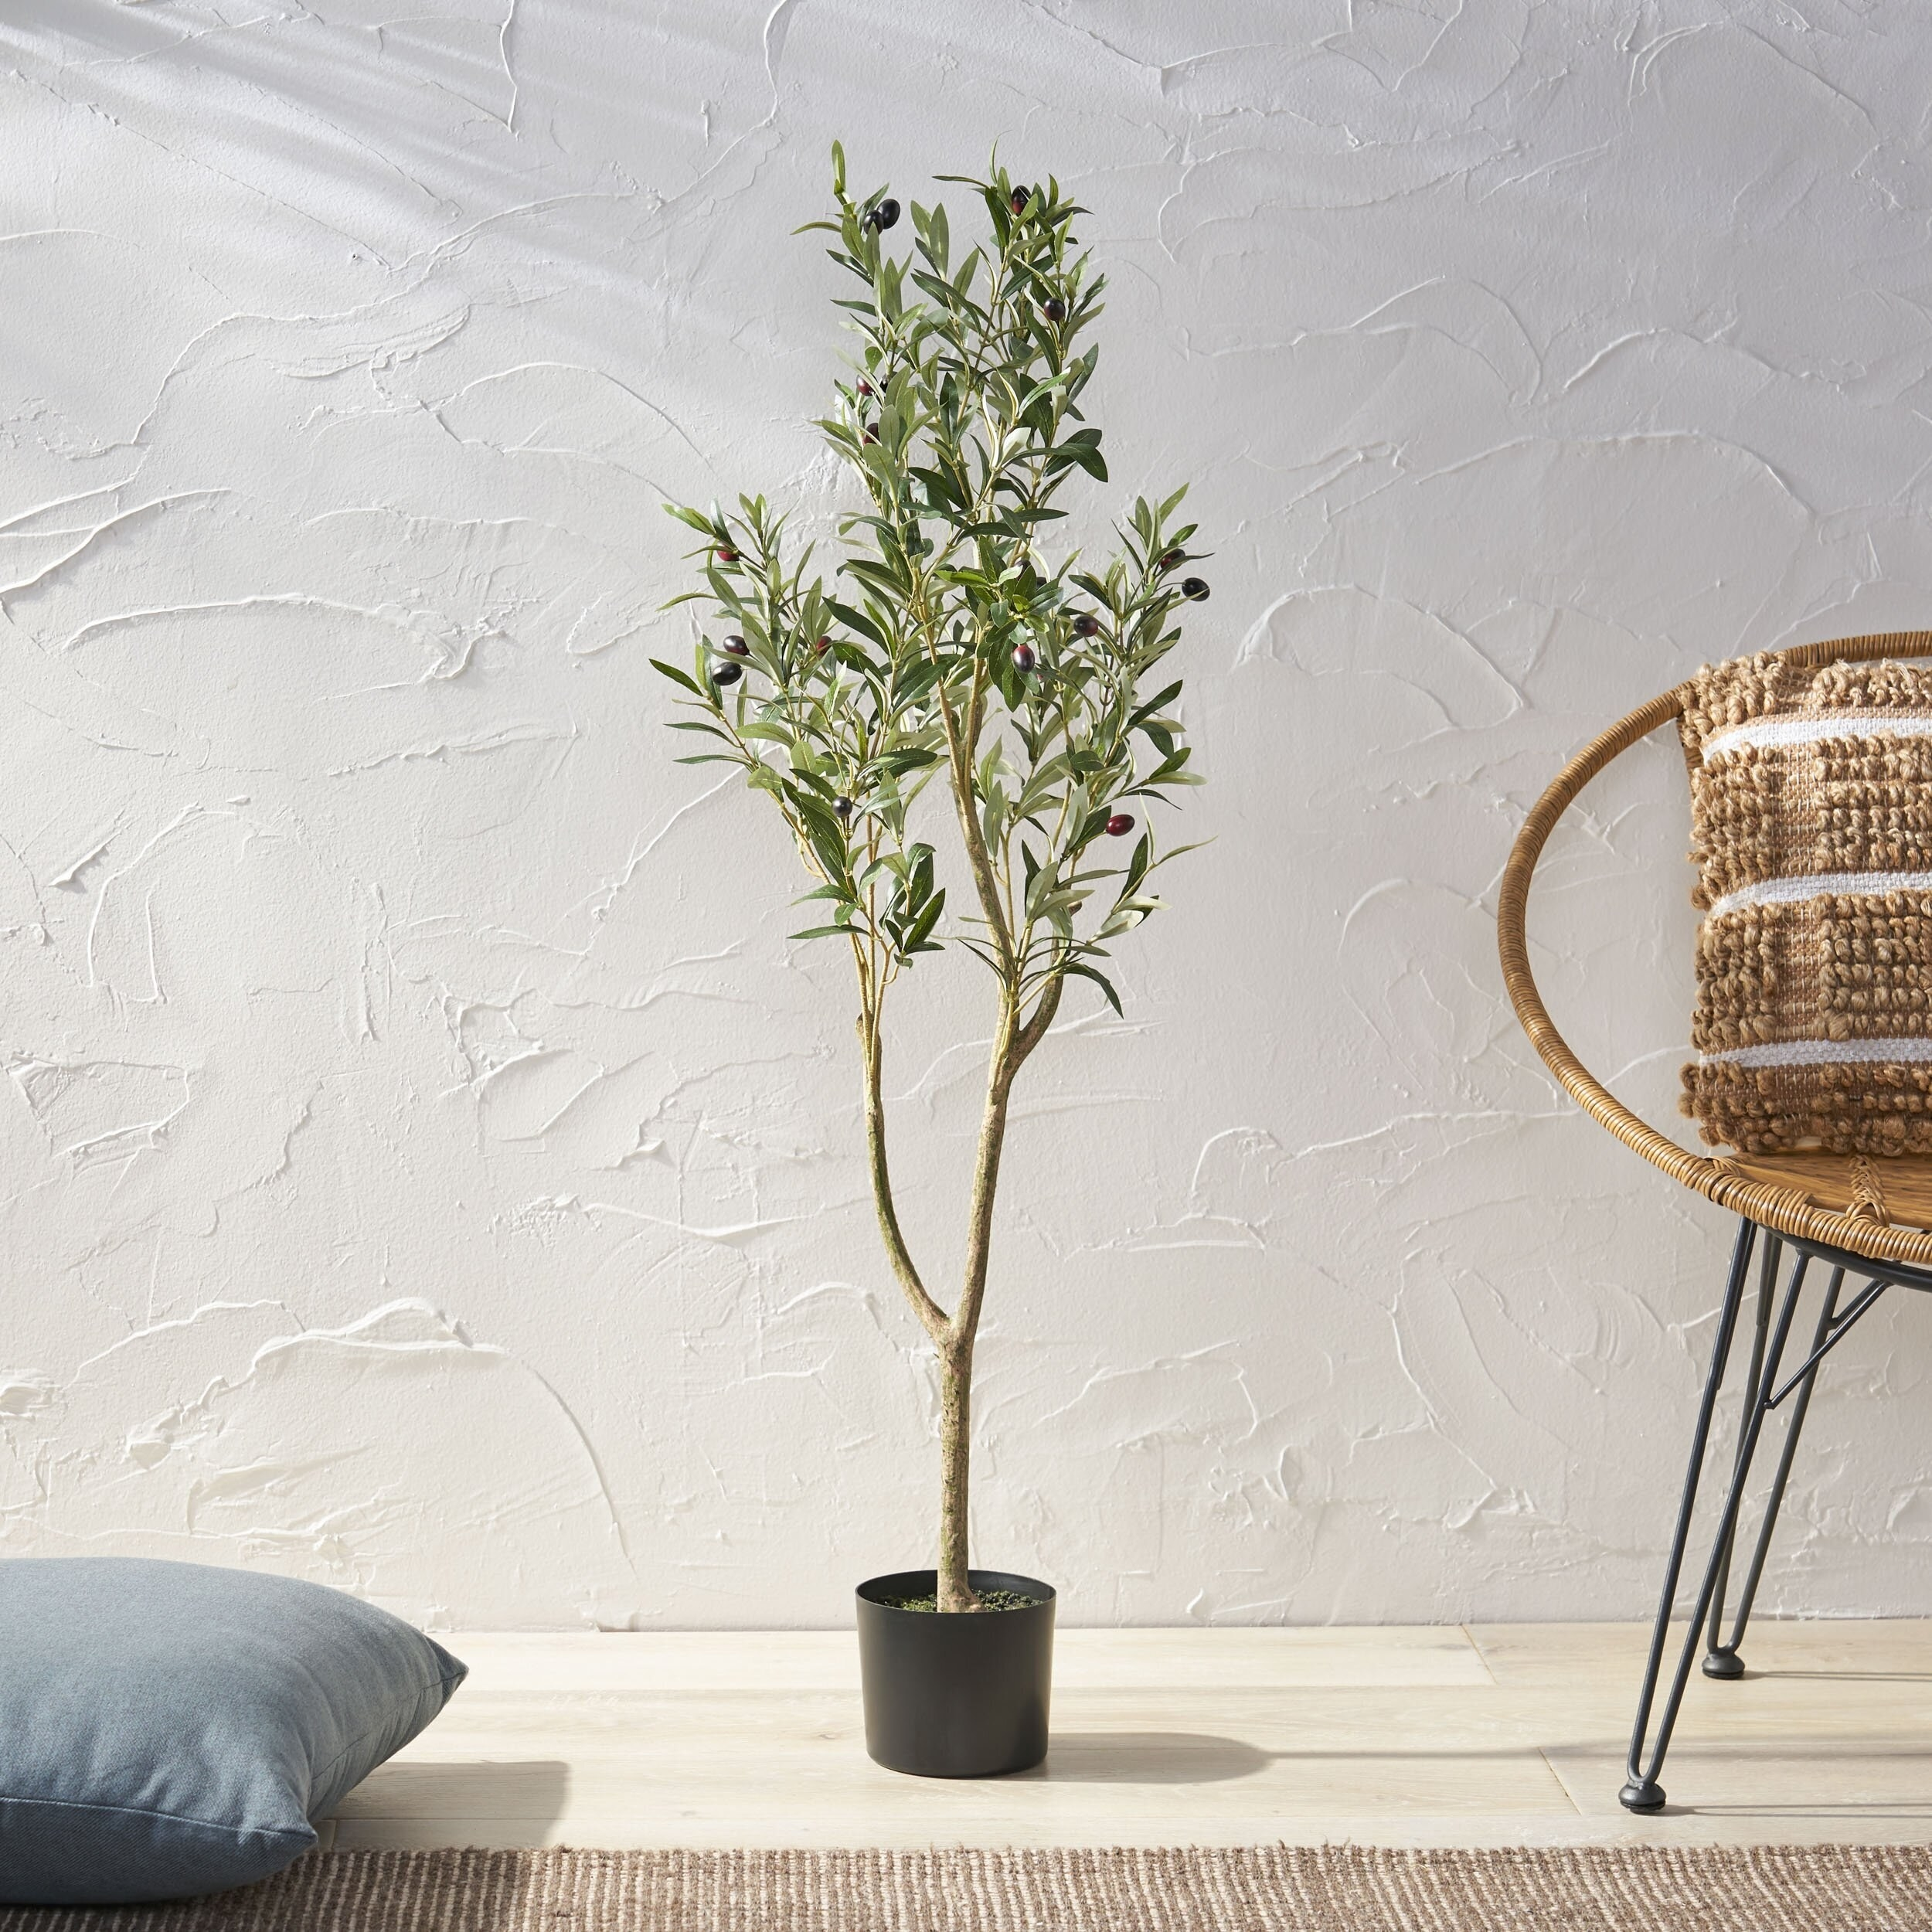 medium sized olive tree with several leafy branches